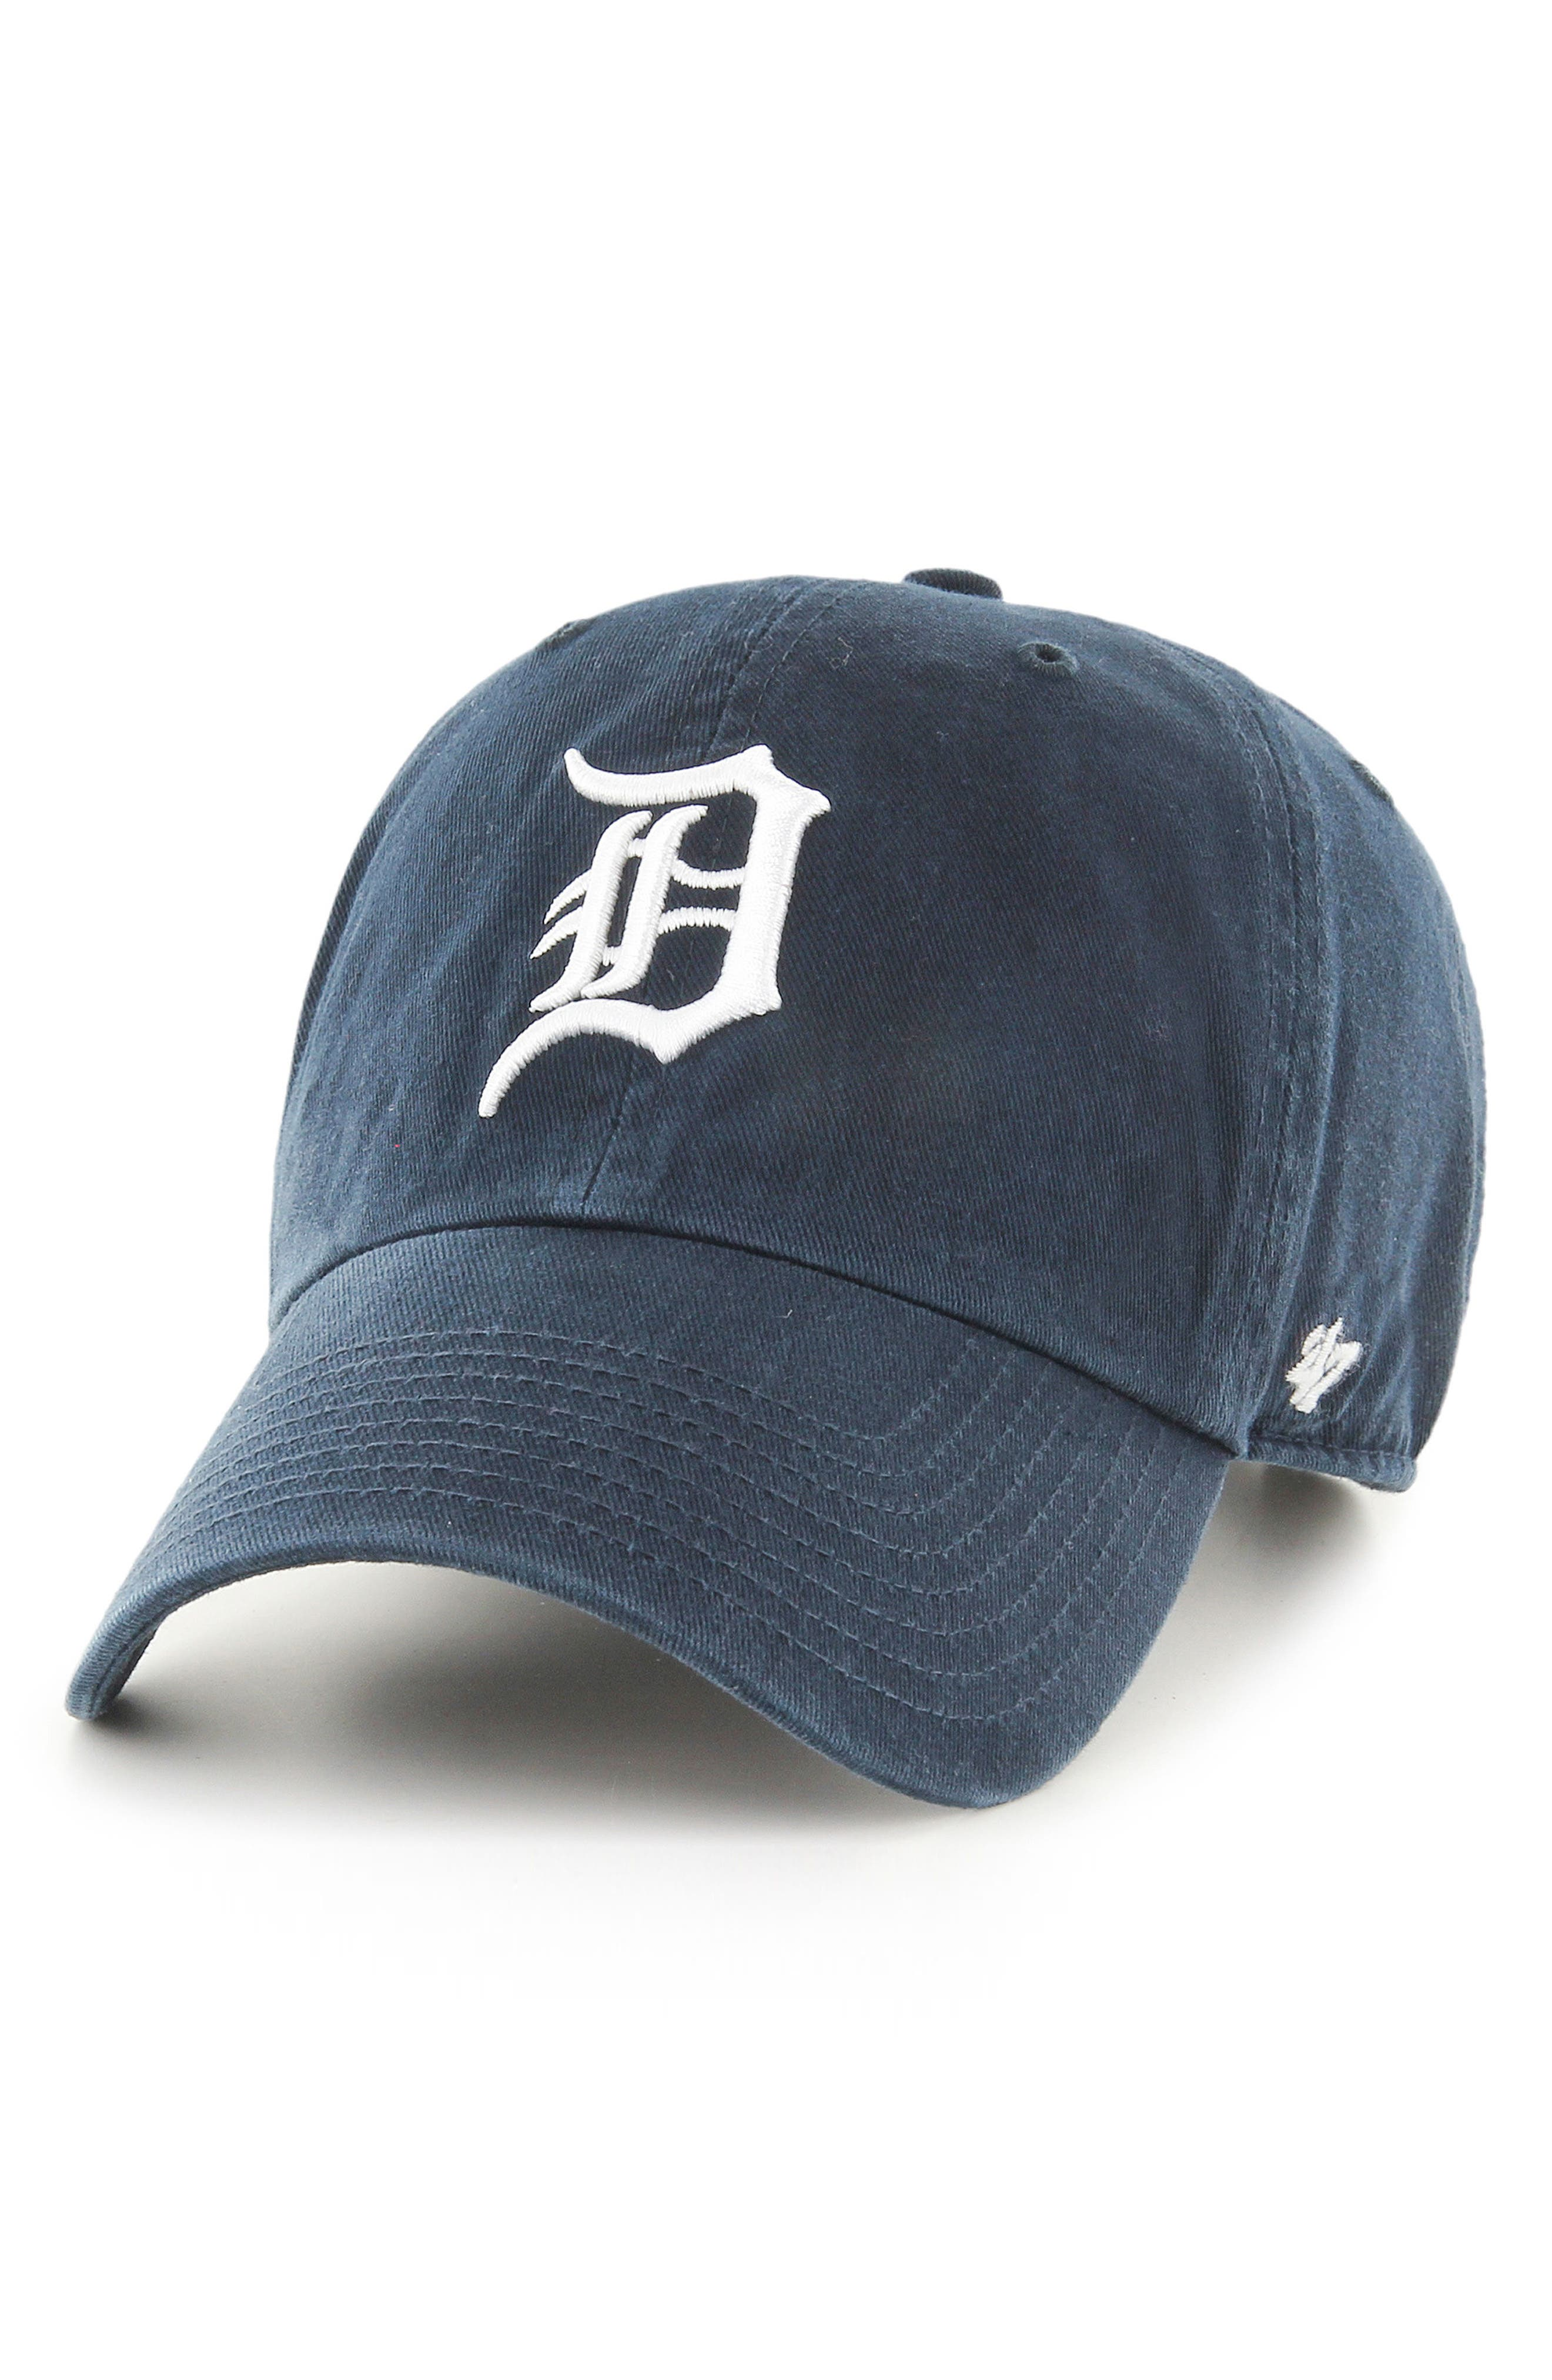 '47 Clean Up Detroit Tigers Baseball Cap